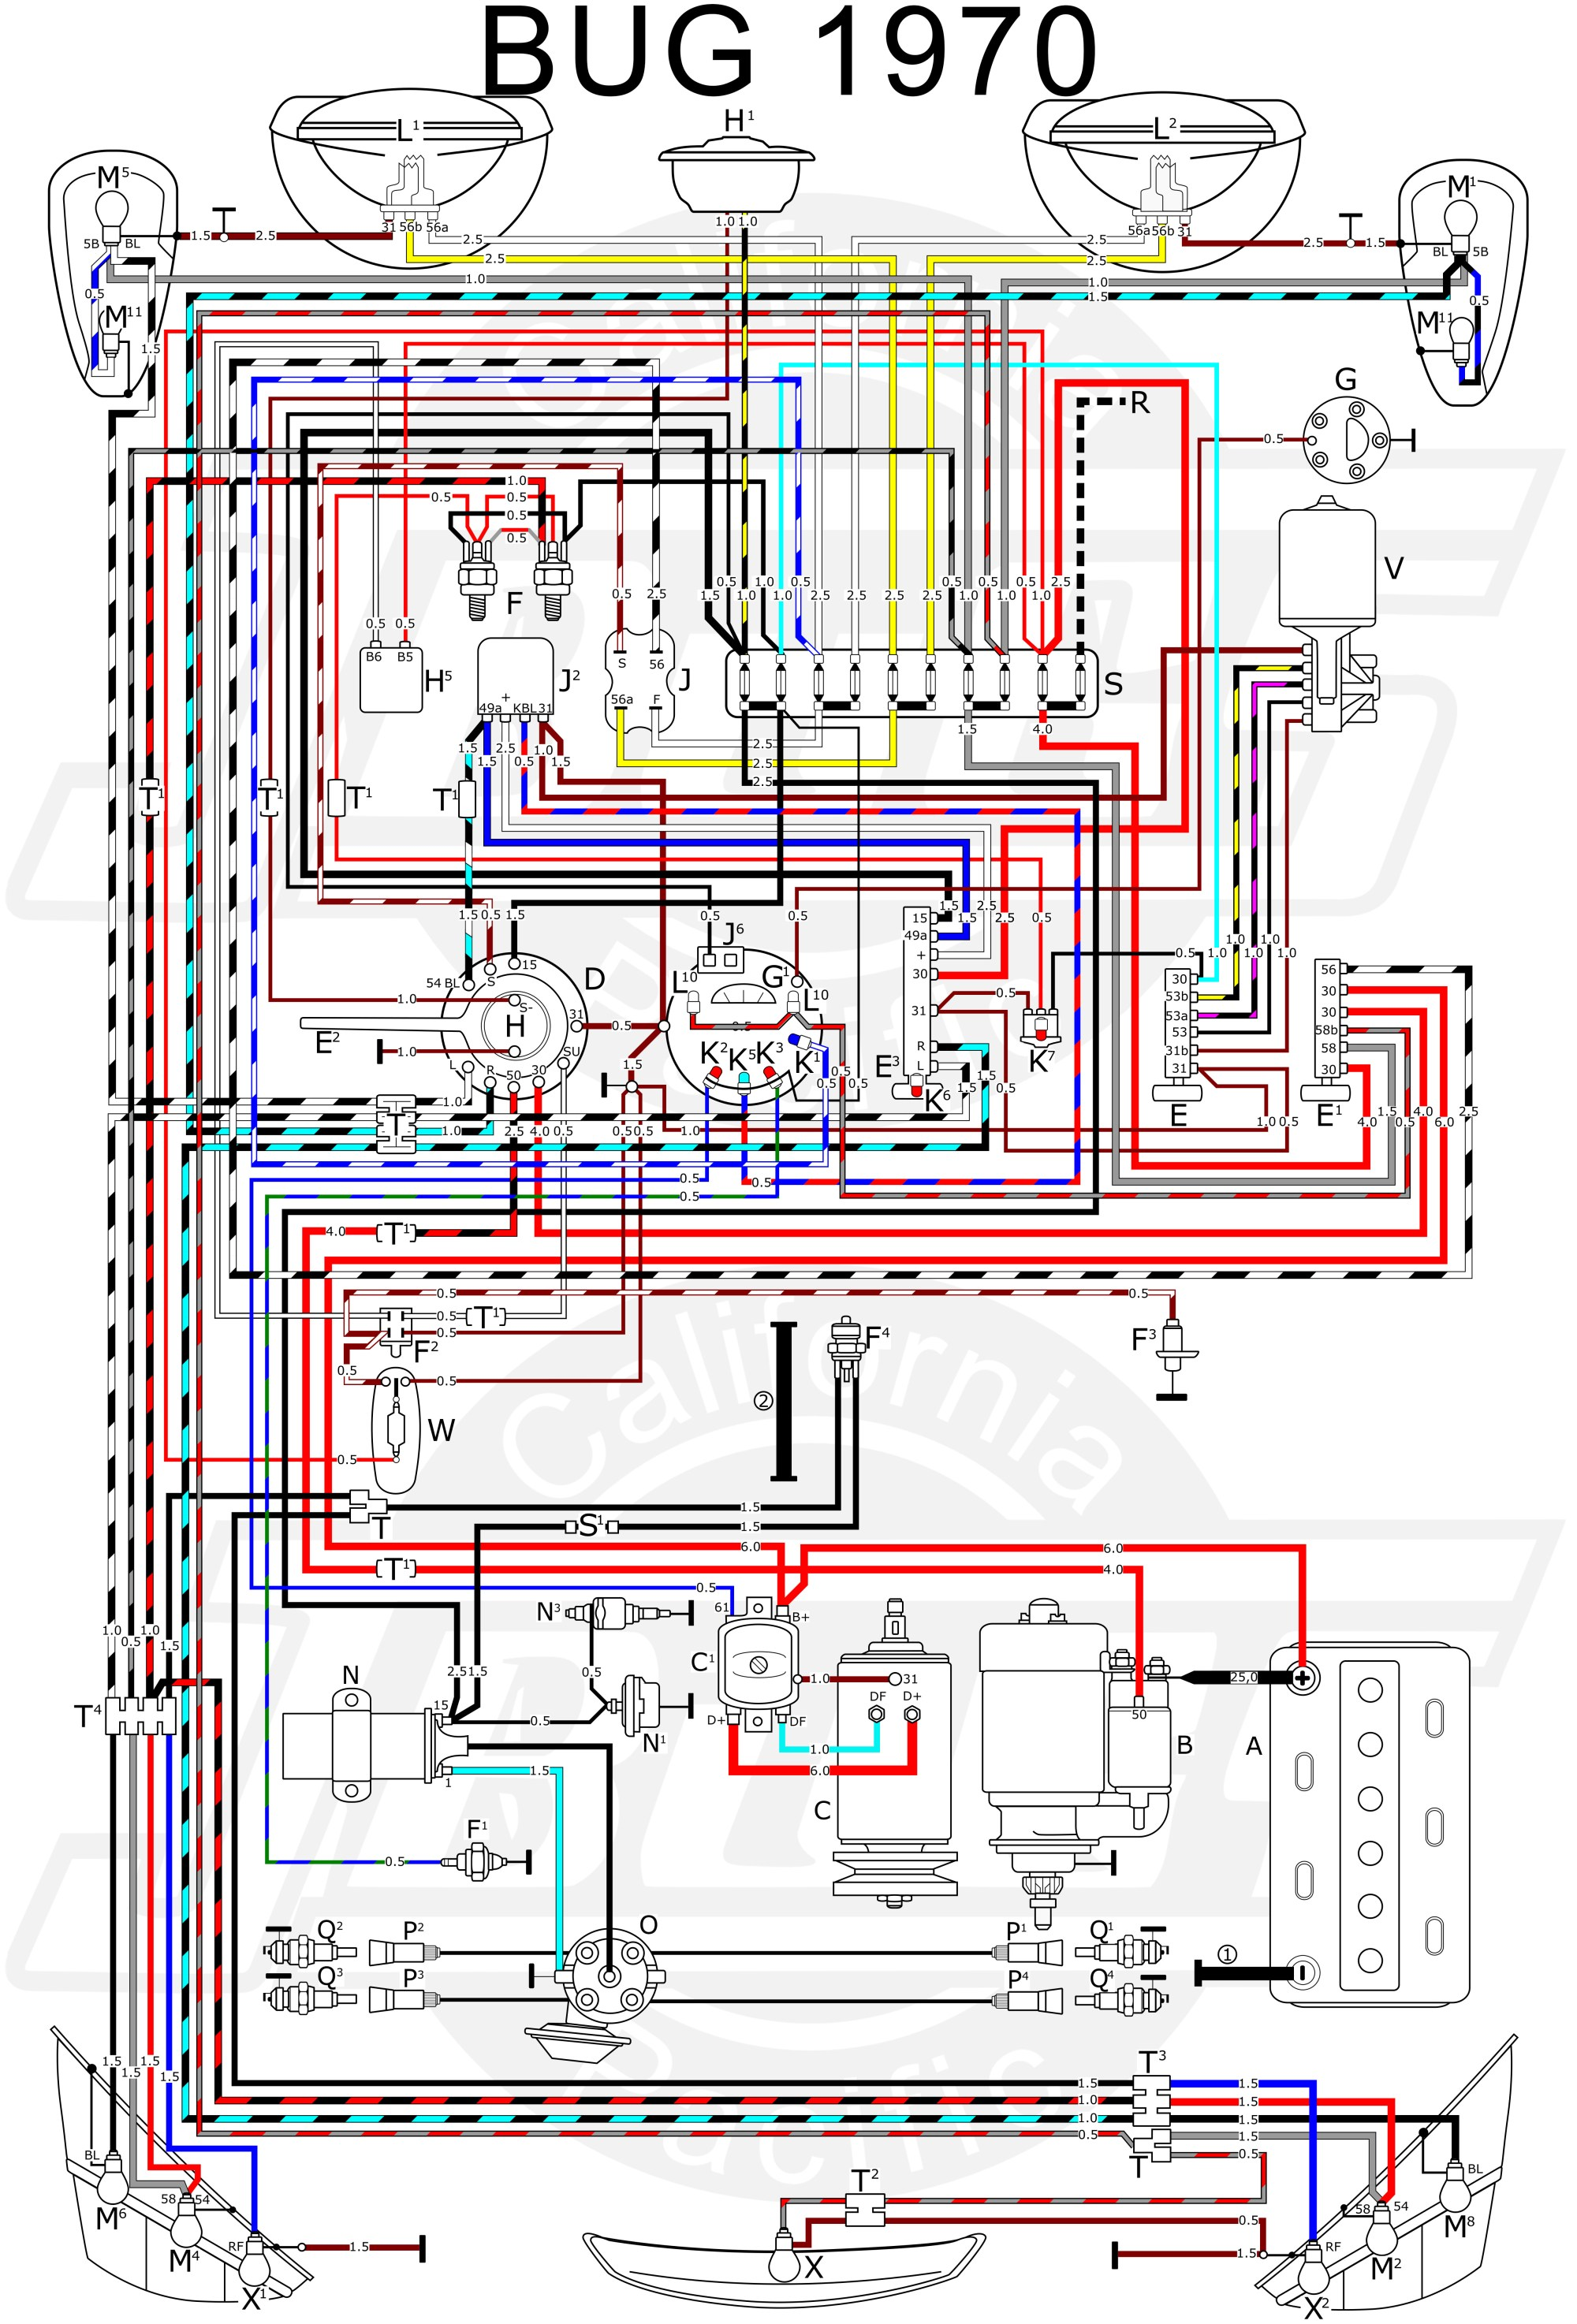 hight resolution of vw 1600 wiring diagram free wiring diagram for you u2022 rh ekowine store vw 1600 coil